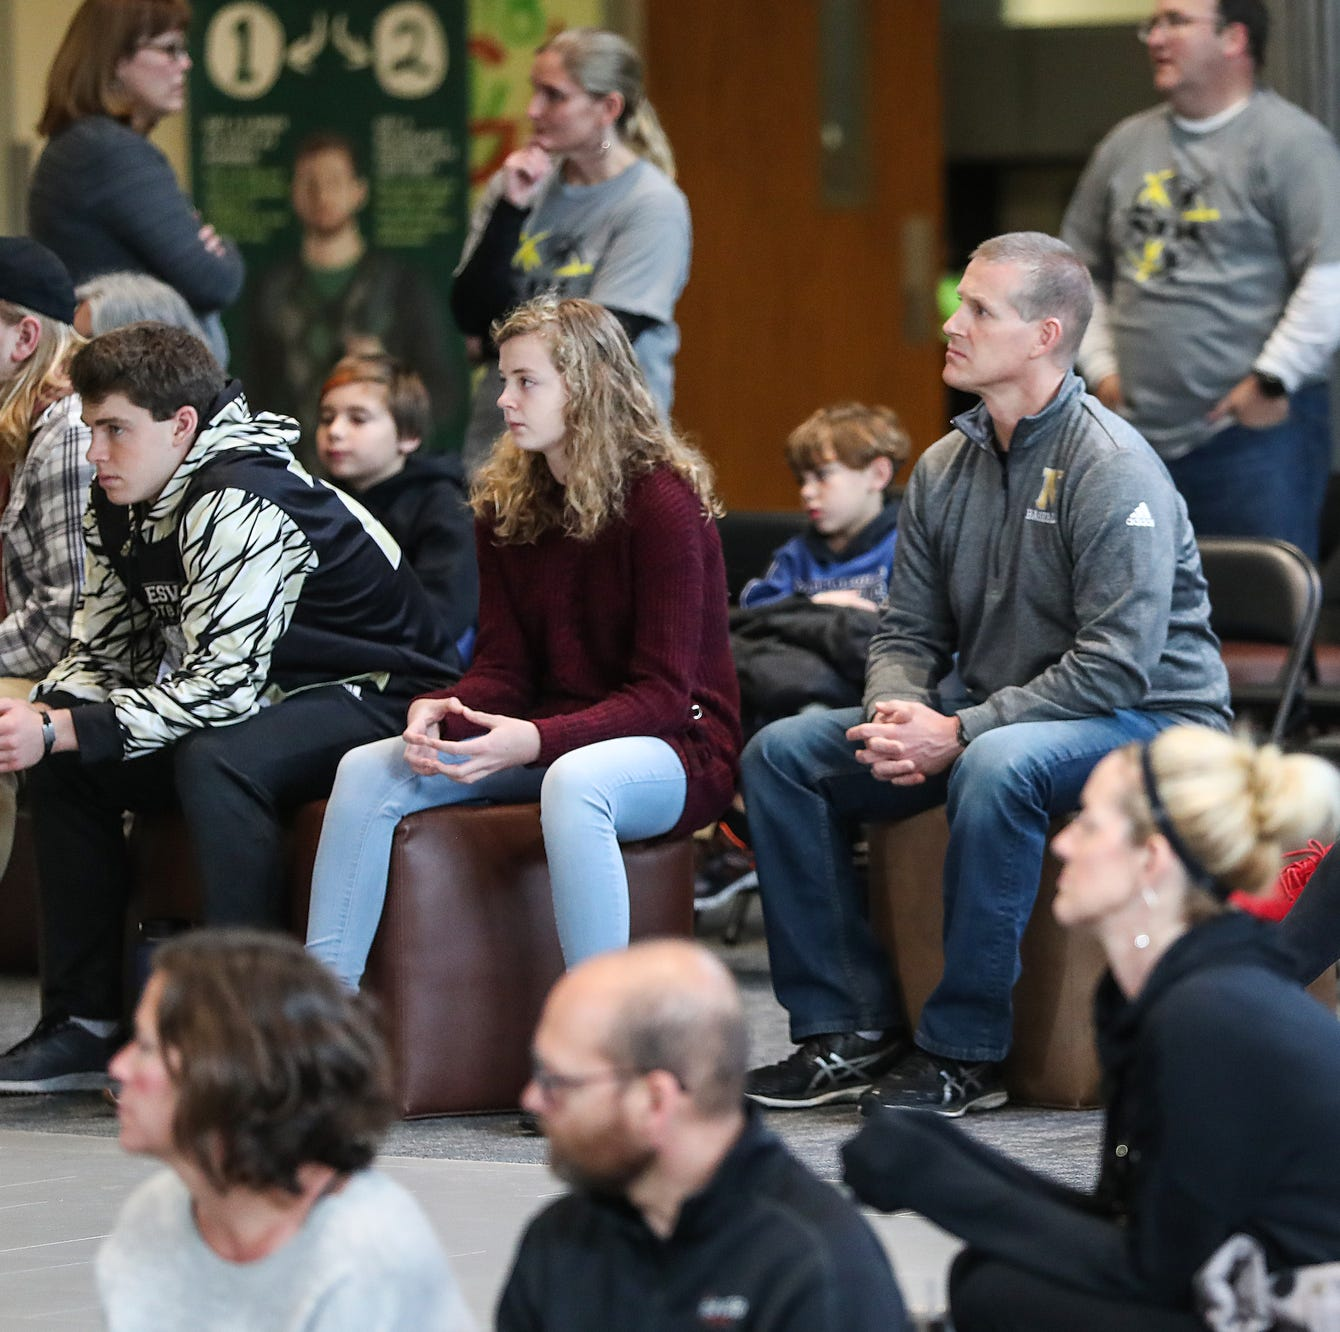 'A life-or-death situation': Noblesville high school threat inspires forum on racism